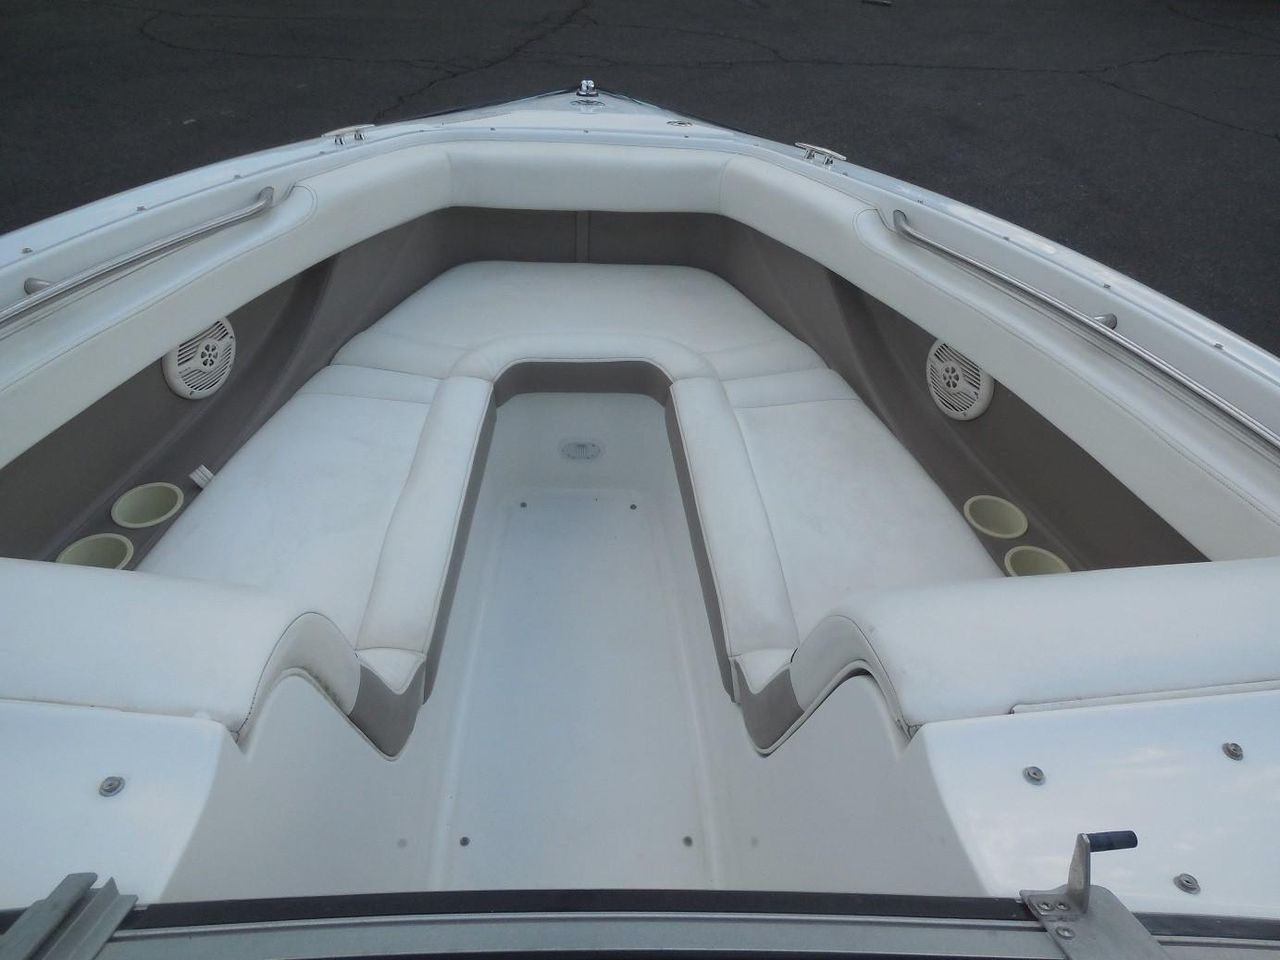 Bow Of A Boat >> 2003 Used Cobalt 240 Open Bow240 Open Bow Bowrider Boat For Sale